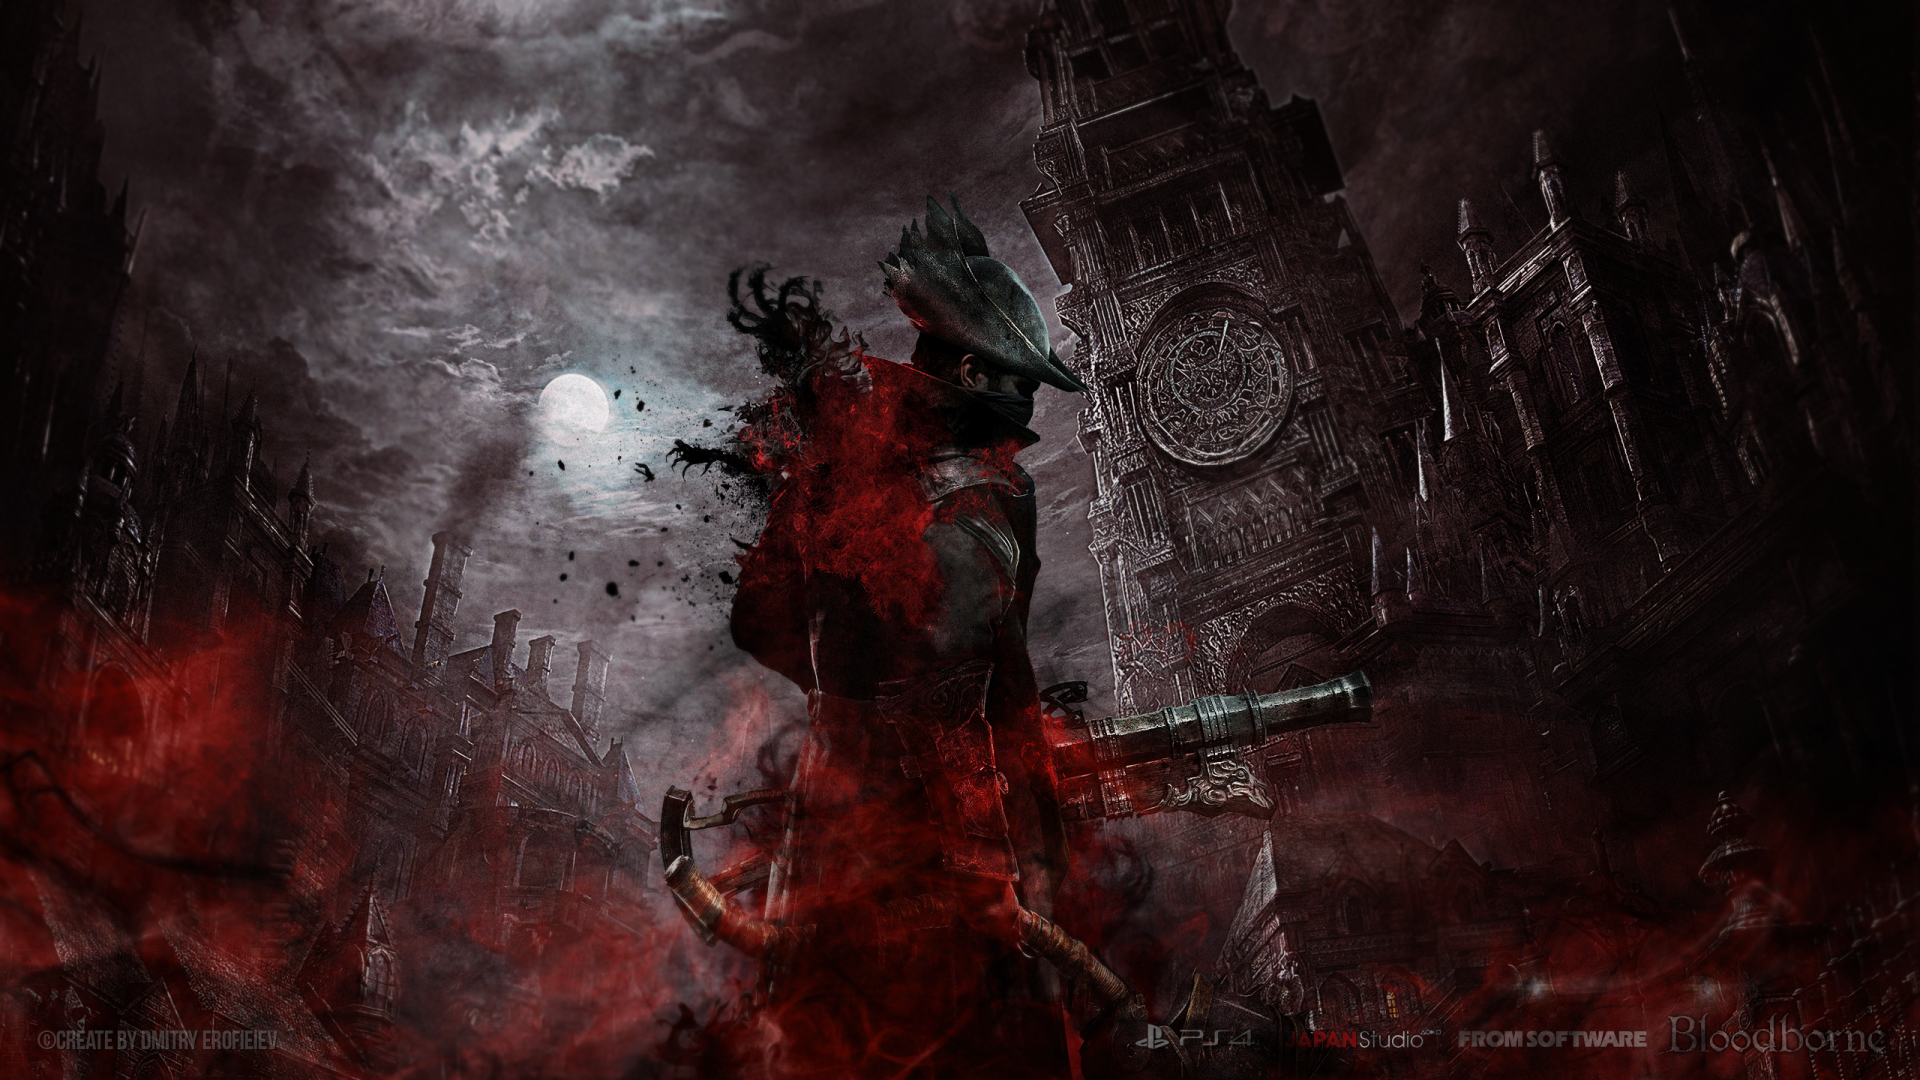 Bloodborne wallpaper big hd wallpaper background image 2560x1440 id 584686 wallpaper abyss - Epic wallpapers 2560x1440 ...